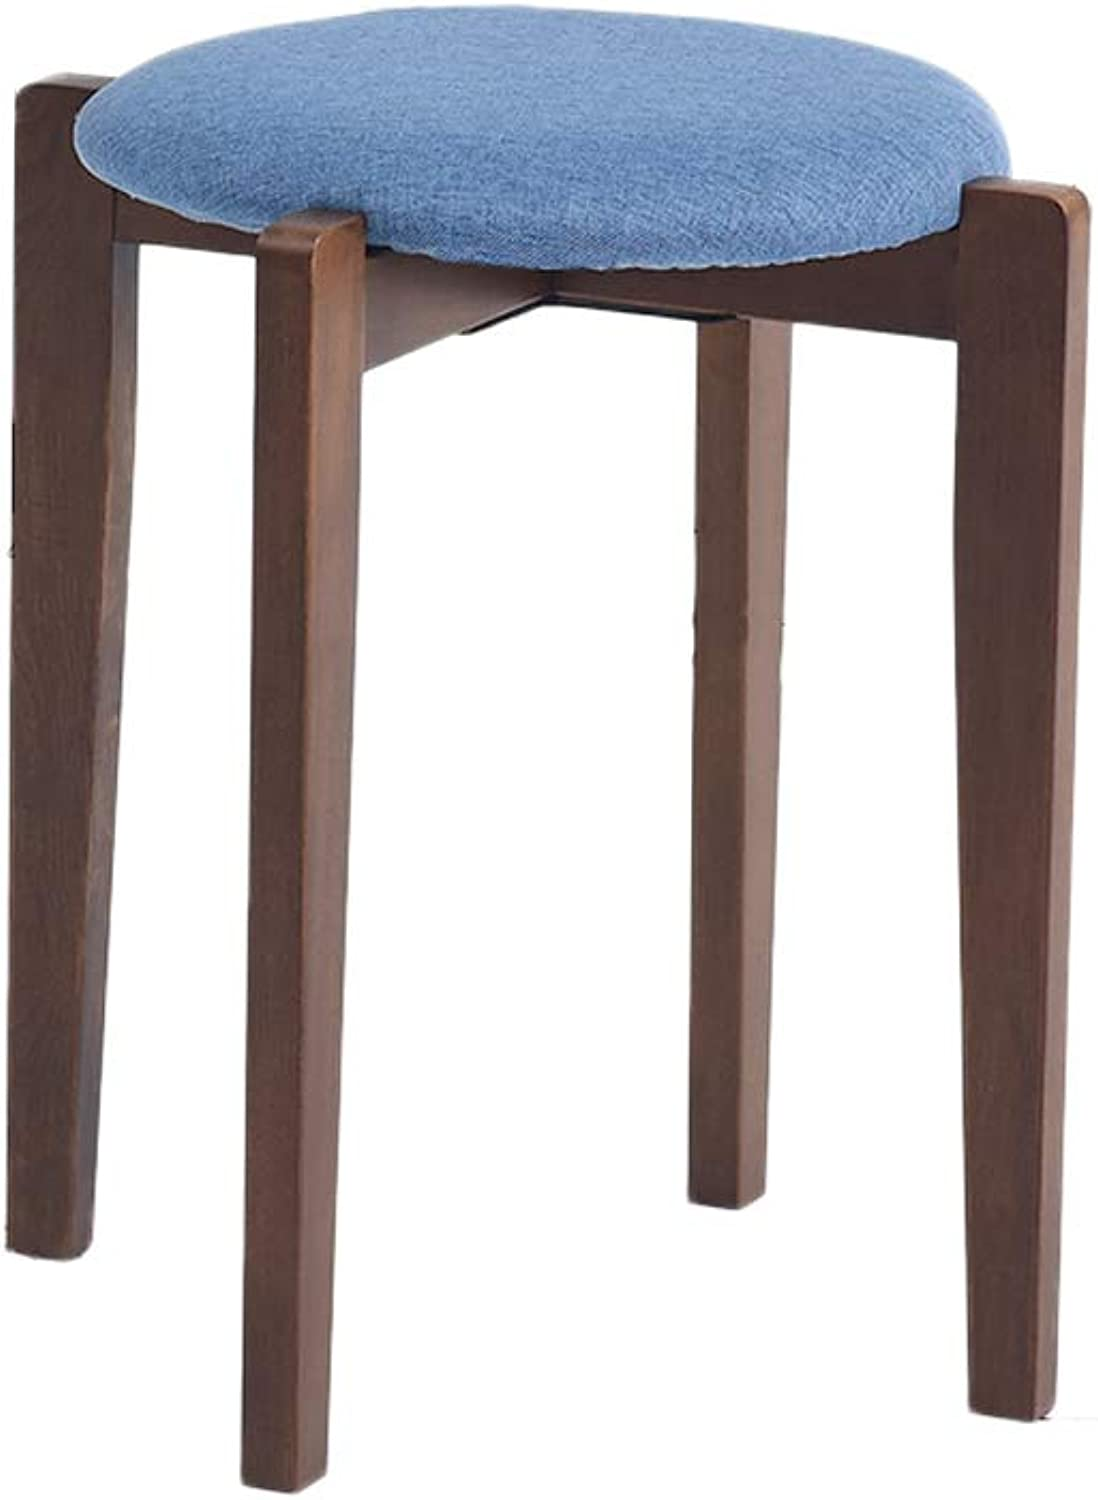 Walnut Beech Wood Chair Stool, Stylish and Creative Modern Dining Table Bench for Dining Room Living Room (color   D)